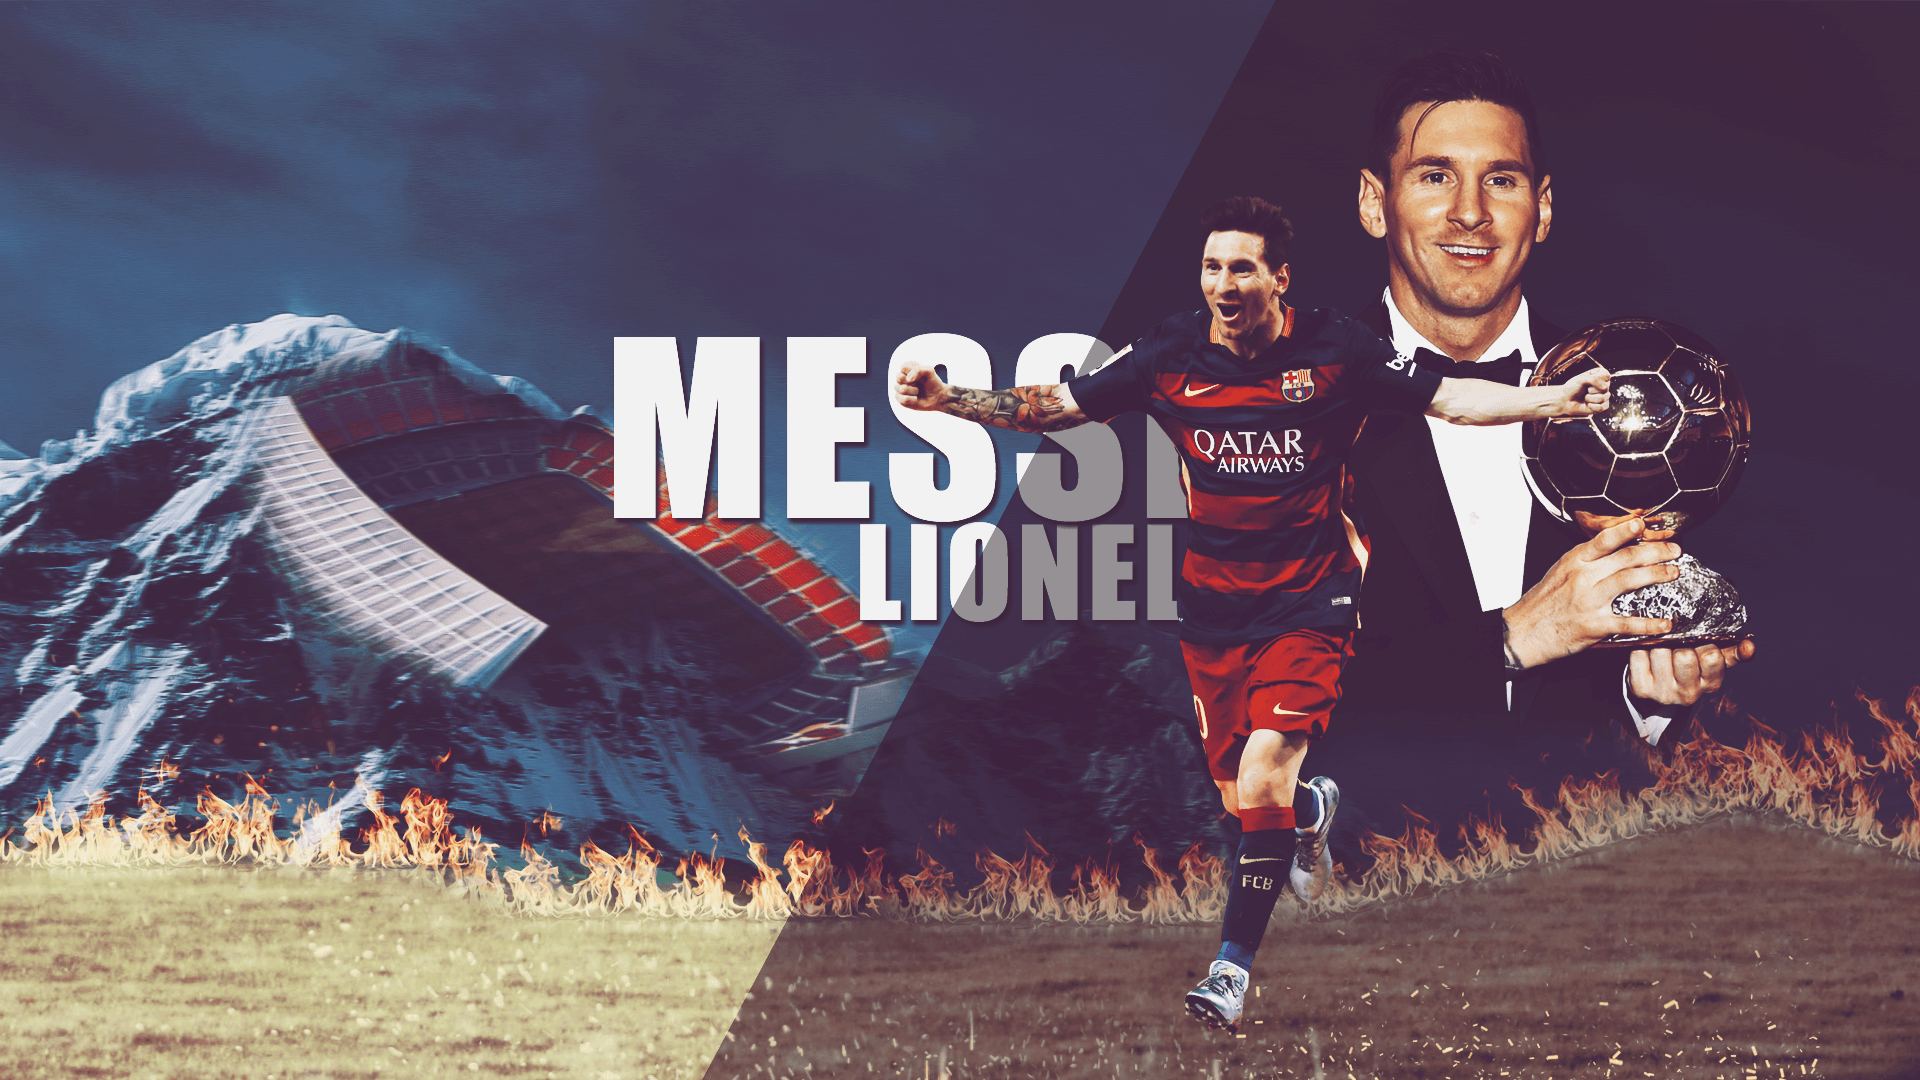 LIONEL MESSI 2016 Balon d'or Winner HD wallpapers by Ramziboy95 on